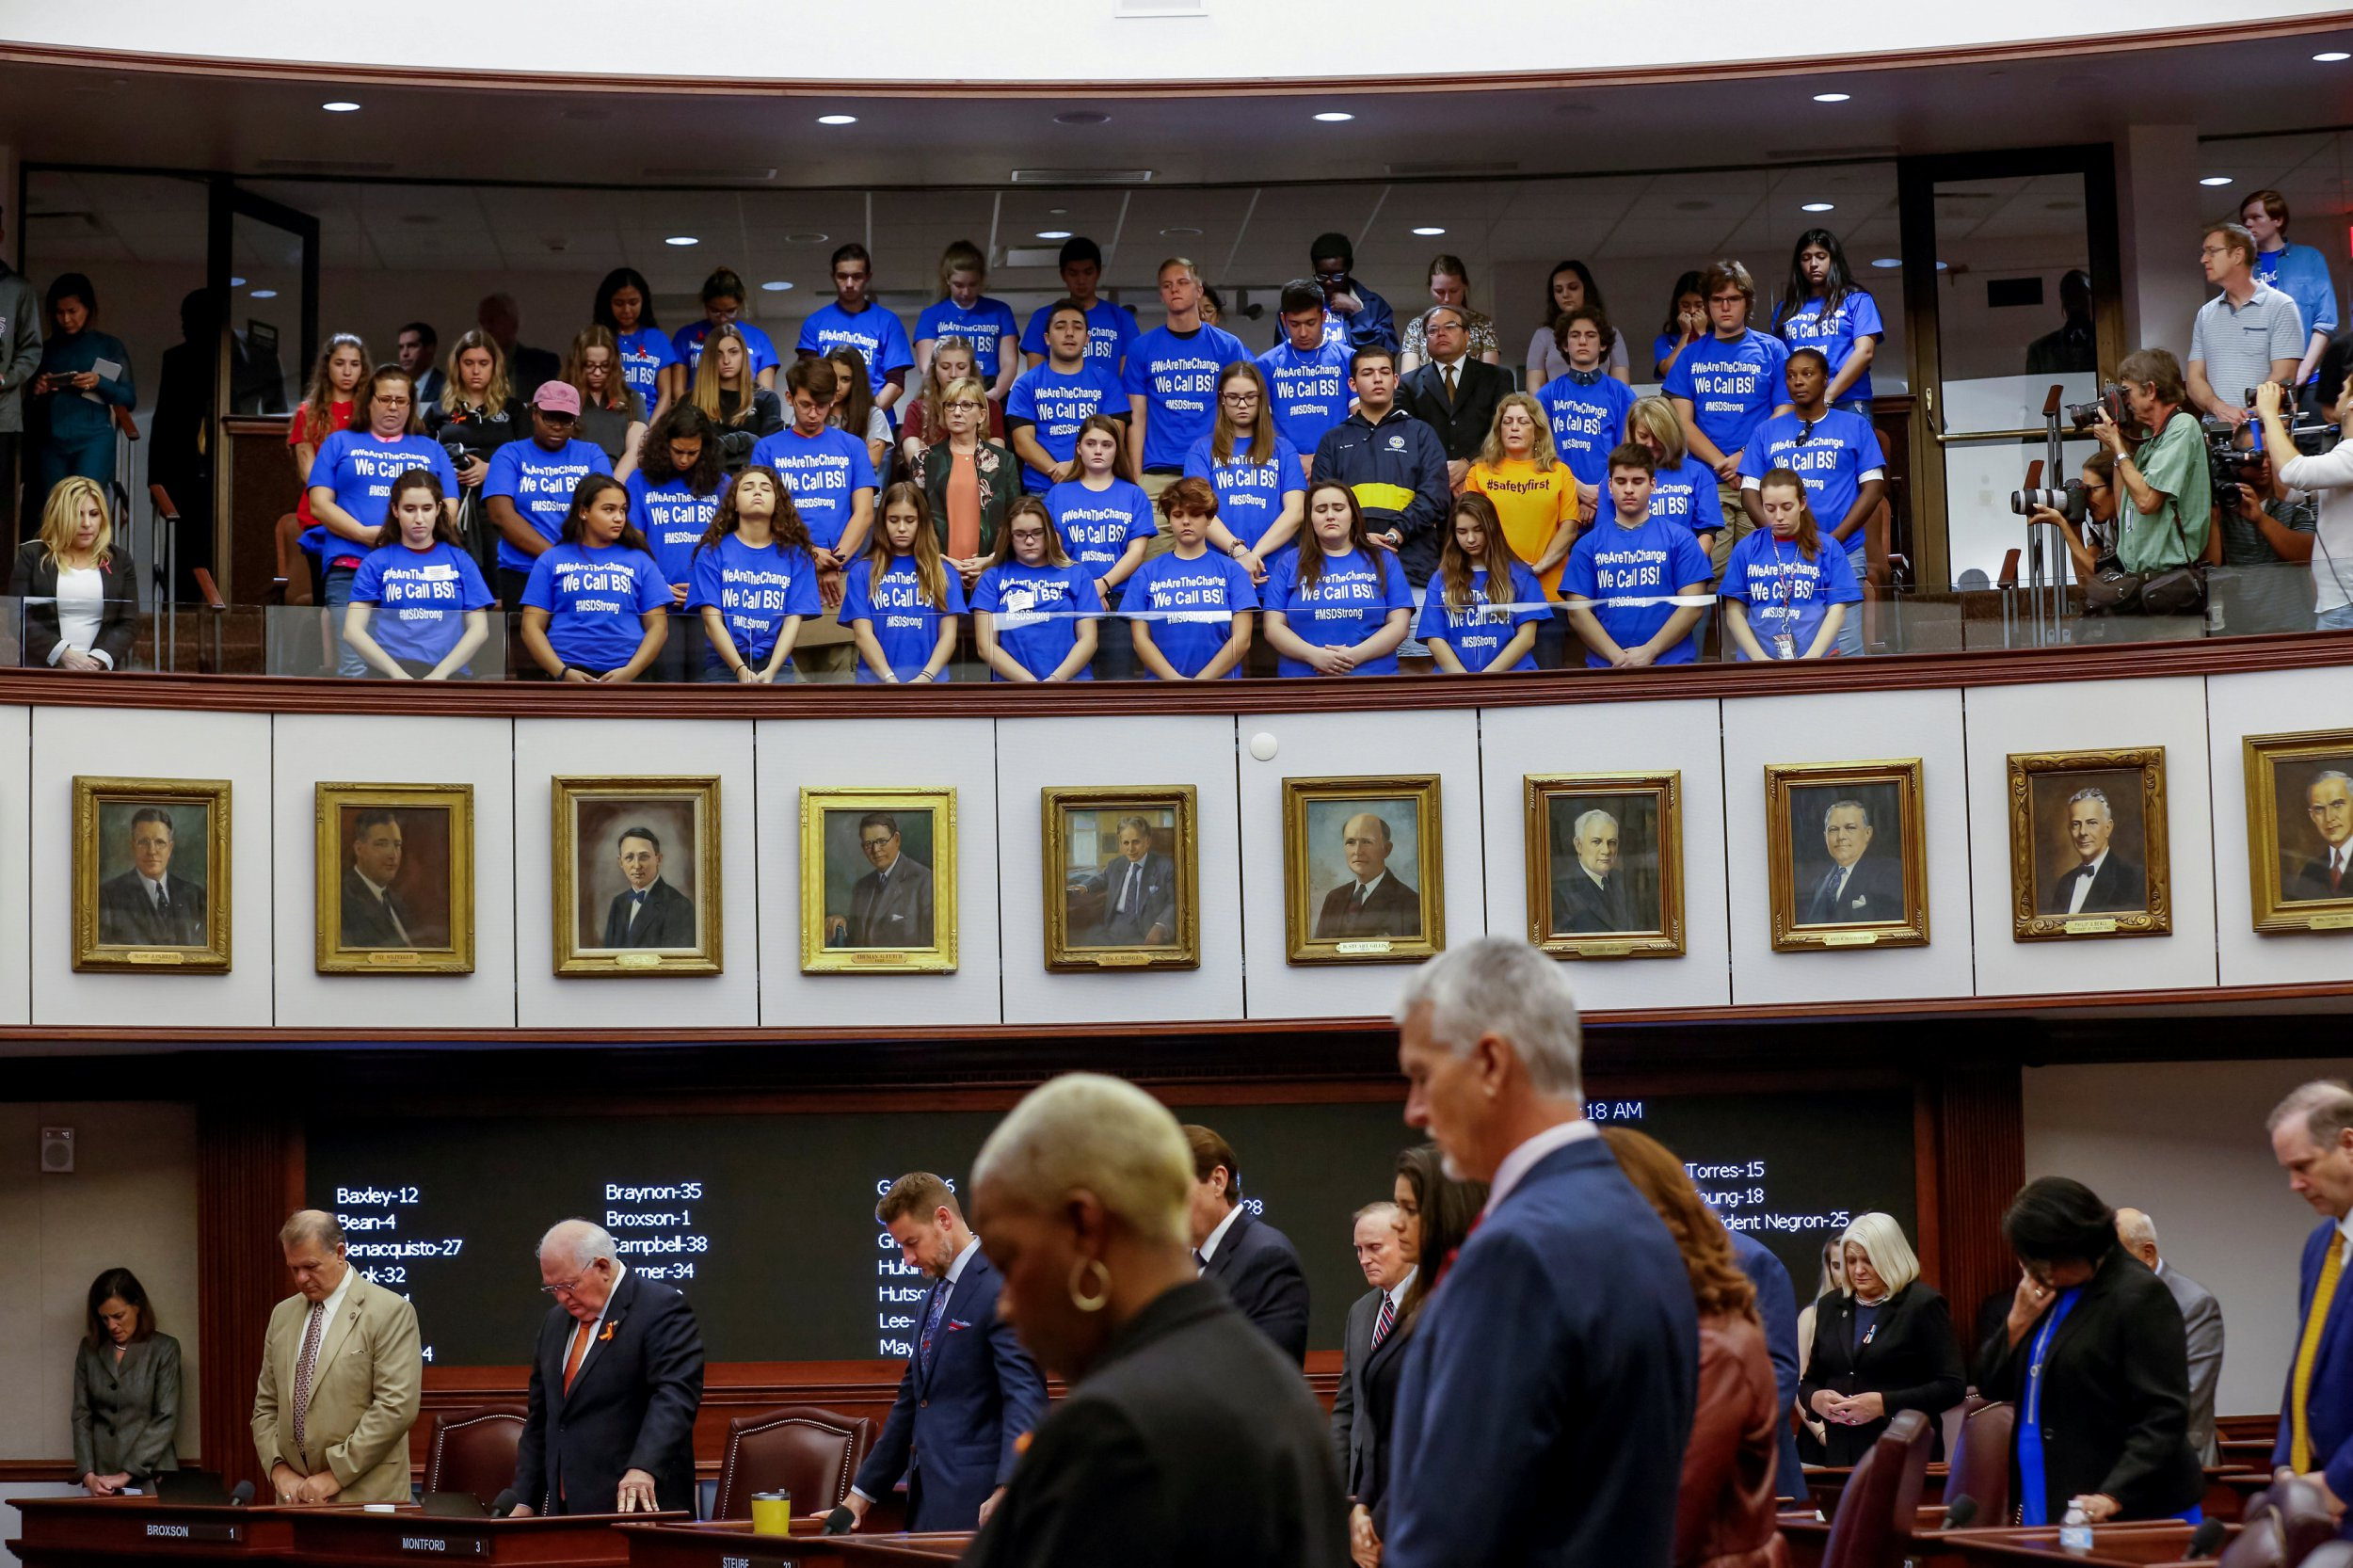 Florida approves new gun restrictions in wake of school massacre